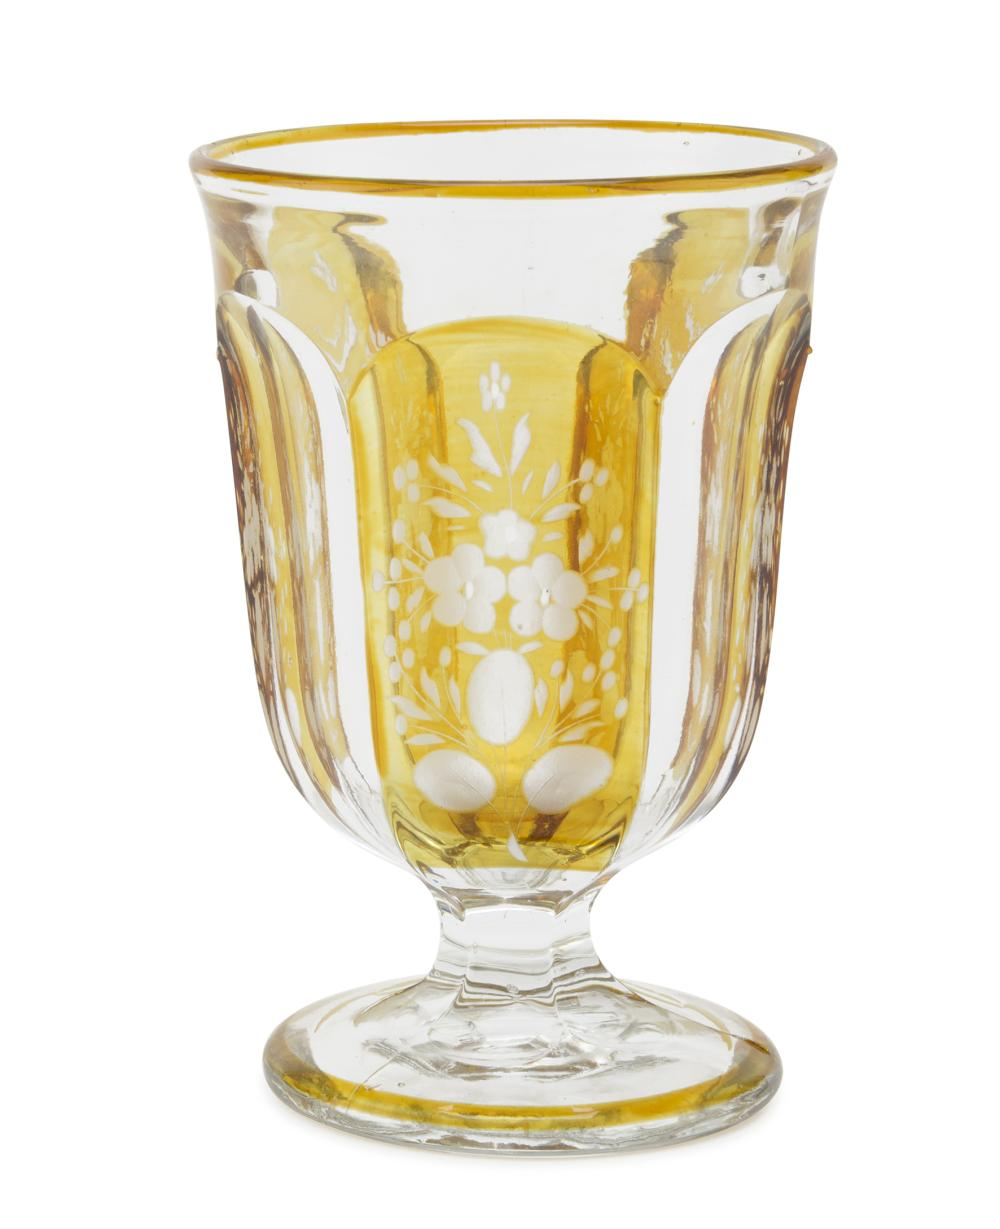 CRYSTAL GLASS, VIENNA EARLY 20TH CENTURY